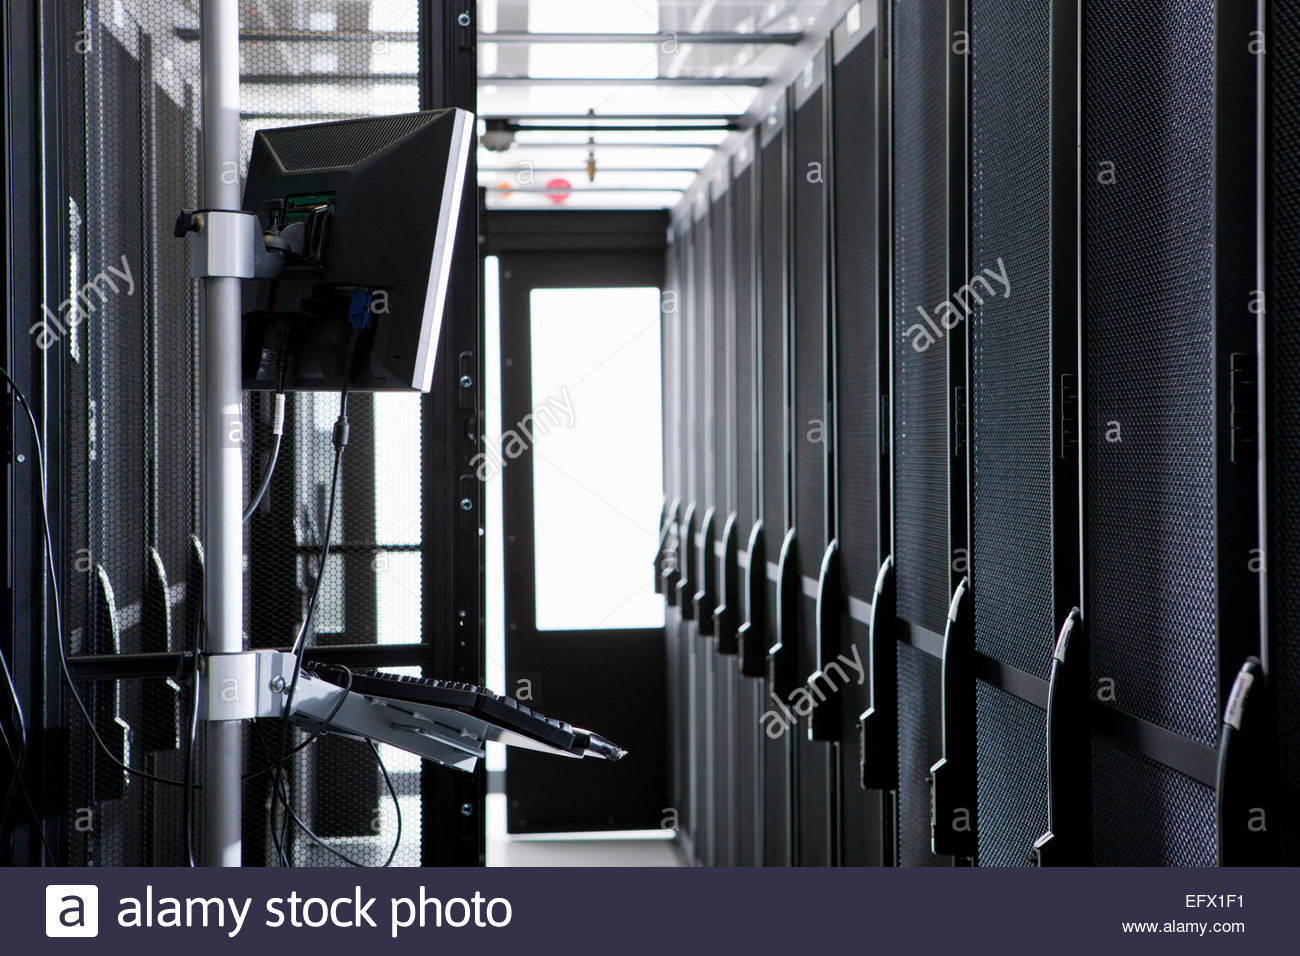 Portable computer in aisle of server storage cabinets - Stock Image